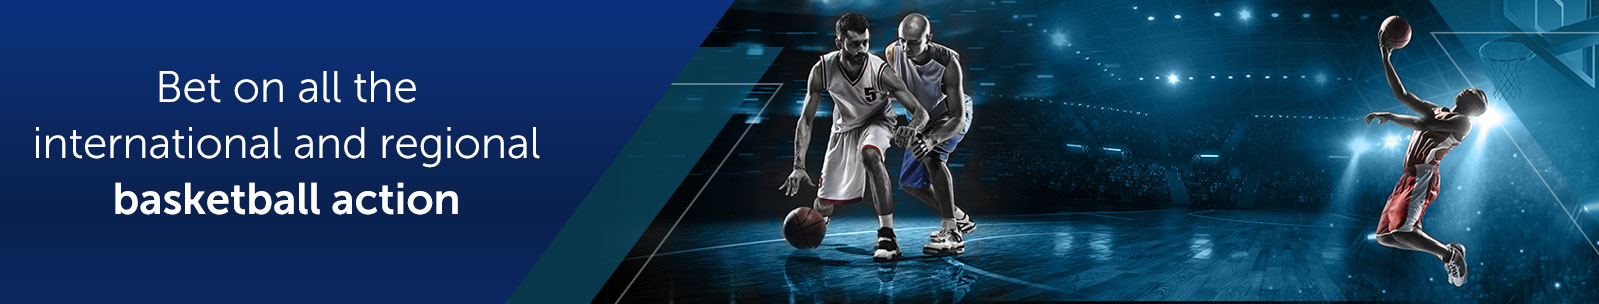 Bet on the Local and International Basketball action